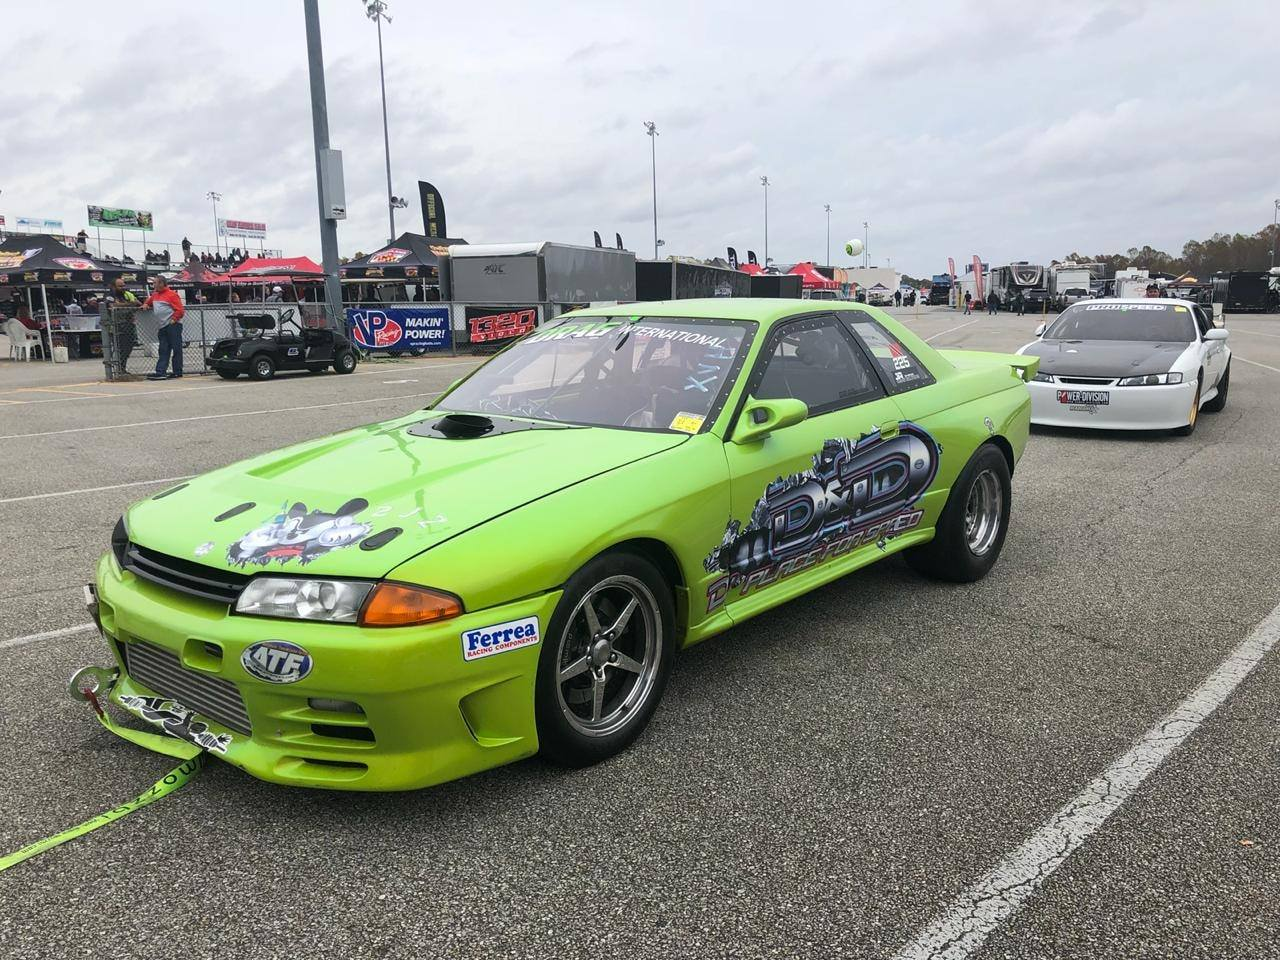 Medicine Man Racing Nissan R32 with a turbo 3.2 L 2JZ inline-six